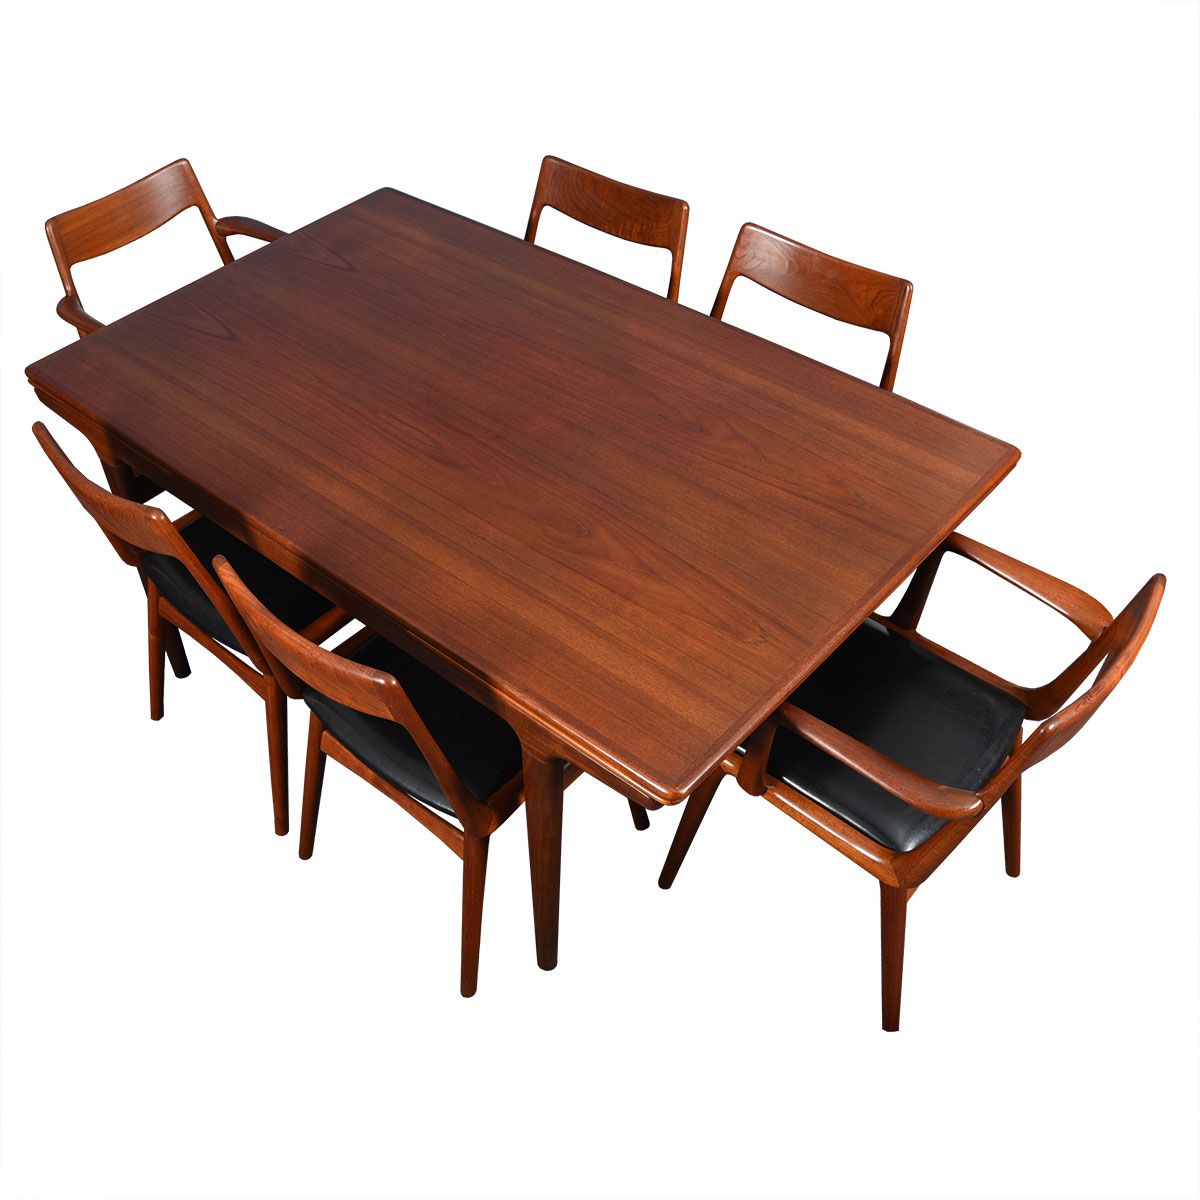 Danish Modern 'Organic' Teak Expanding Dining Table